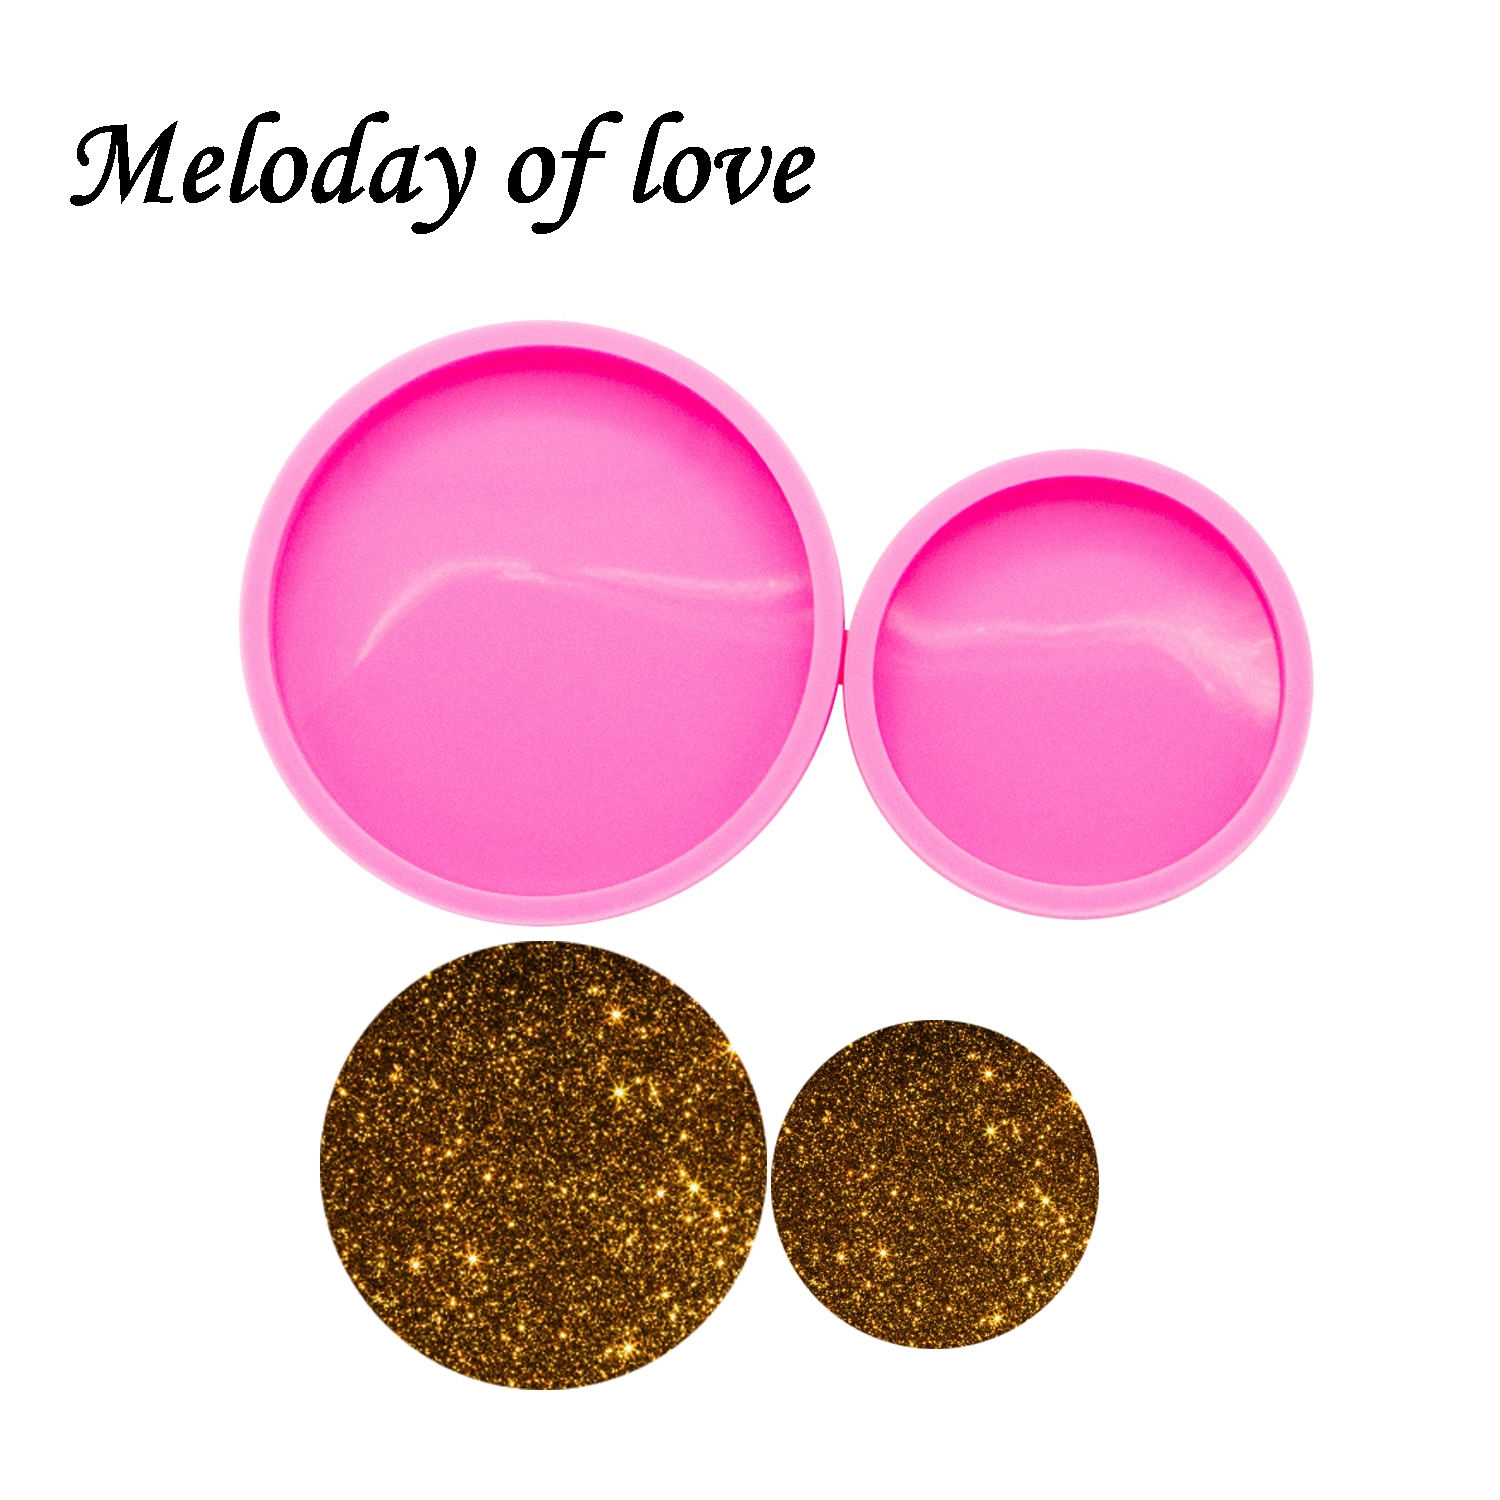 Shiny Glossy 2.3/3 Inches Round Epoxy Resin Molds Circle Coaster Silicone Mold Diy Making Geode Coasters Custom Mould DY0270